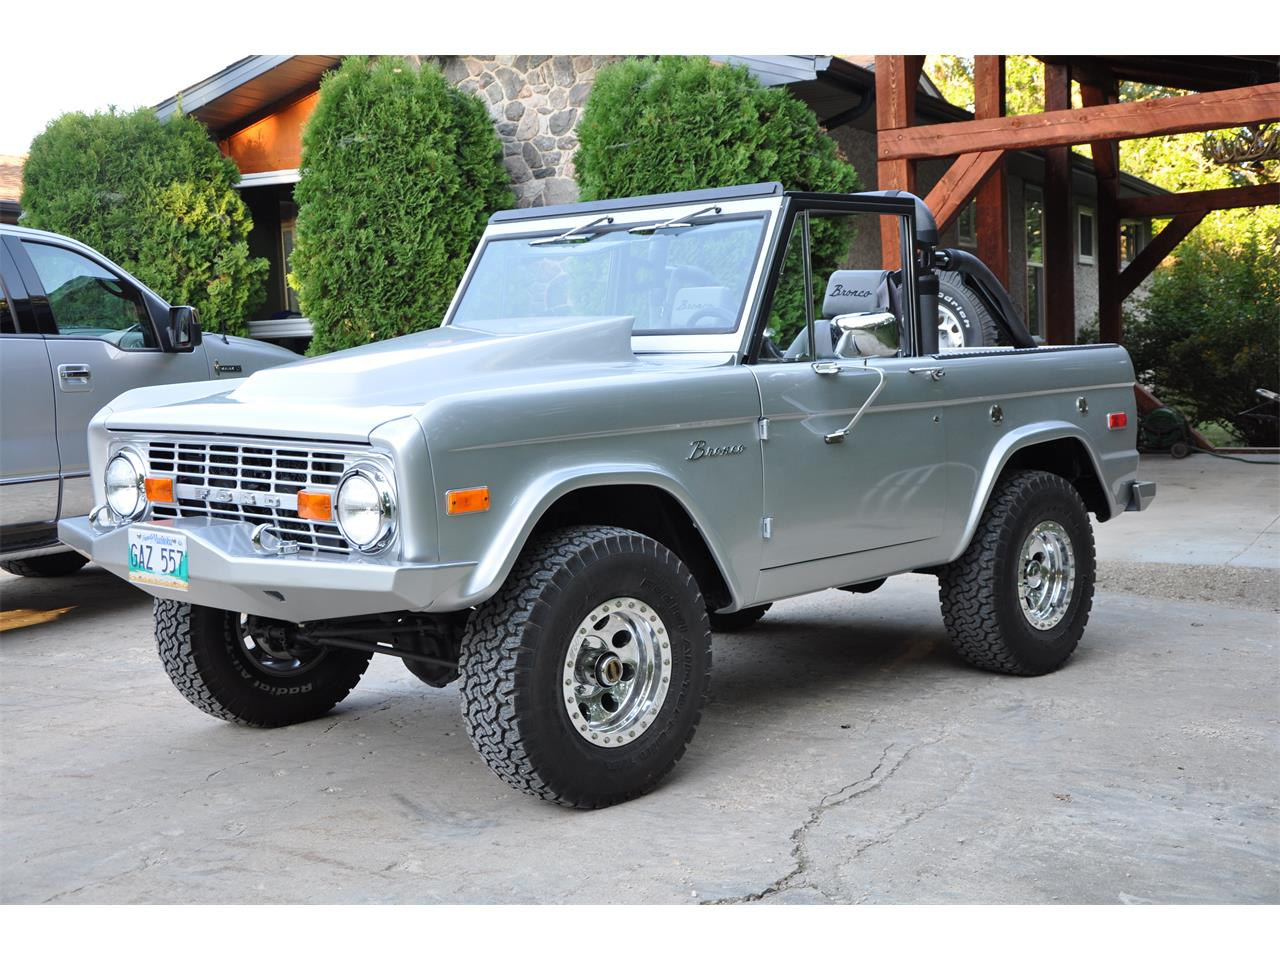 Large picture of 73 bronco j9a0